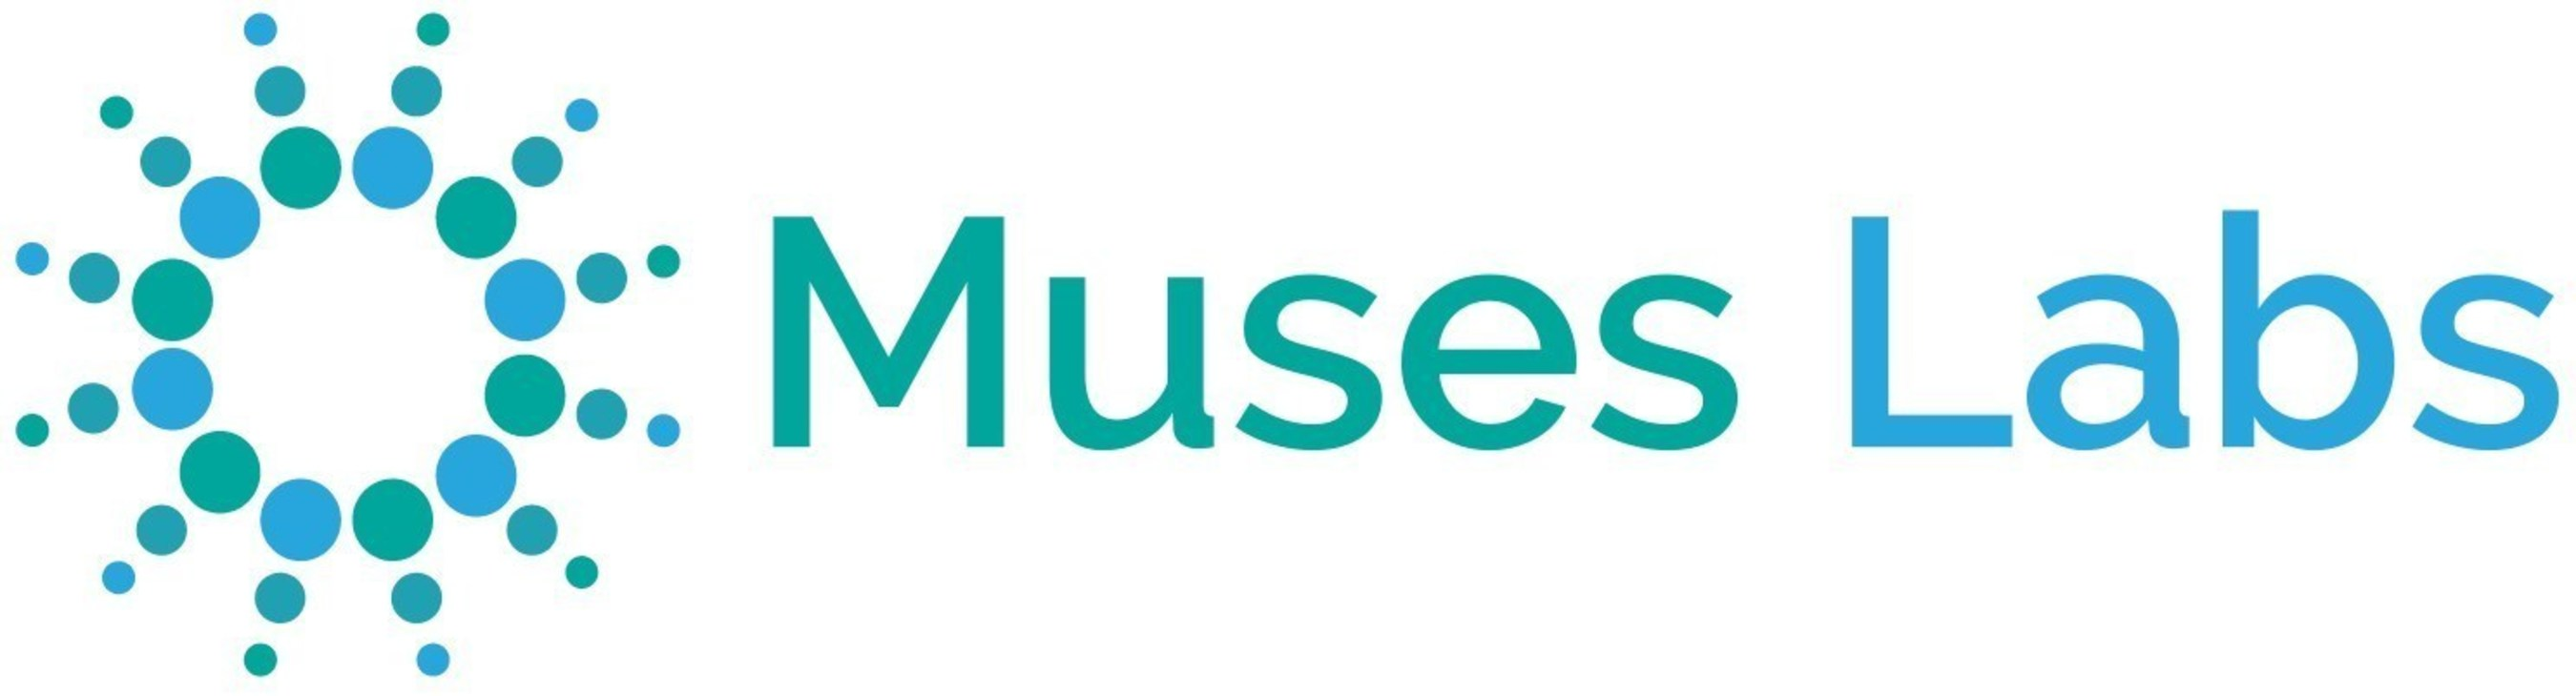 FANFARE ENTERTAINMENT And MUSES LABS Partner To Create Groundbreaking App To Enable Mend'' Protocol For Alzheimer's Disease